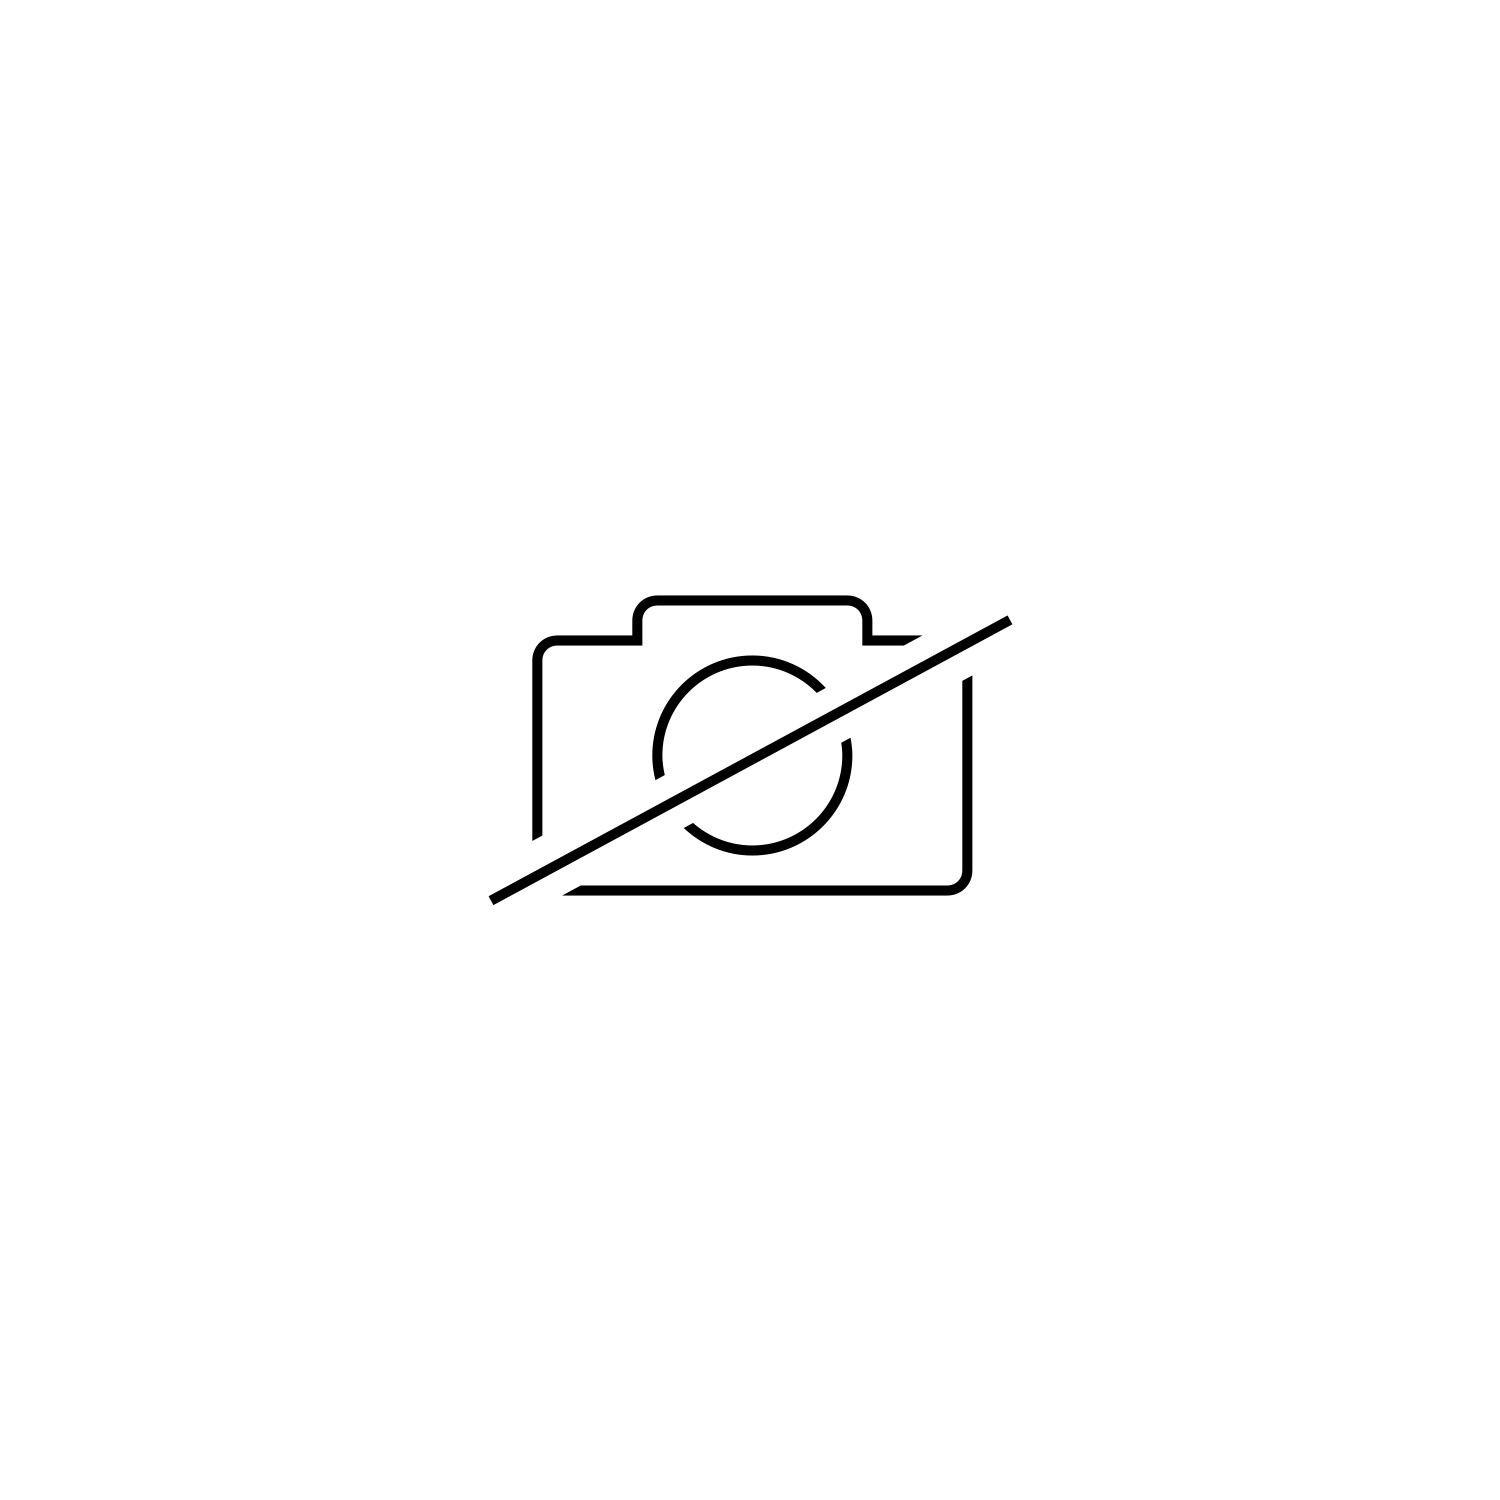 Audi Sport Zipoffjacket, Mens, black, XXL